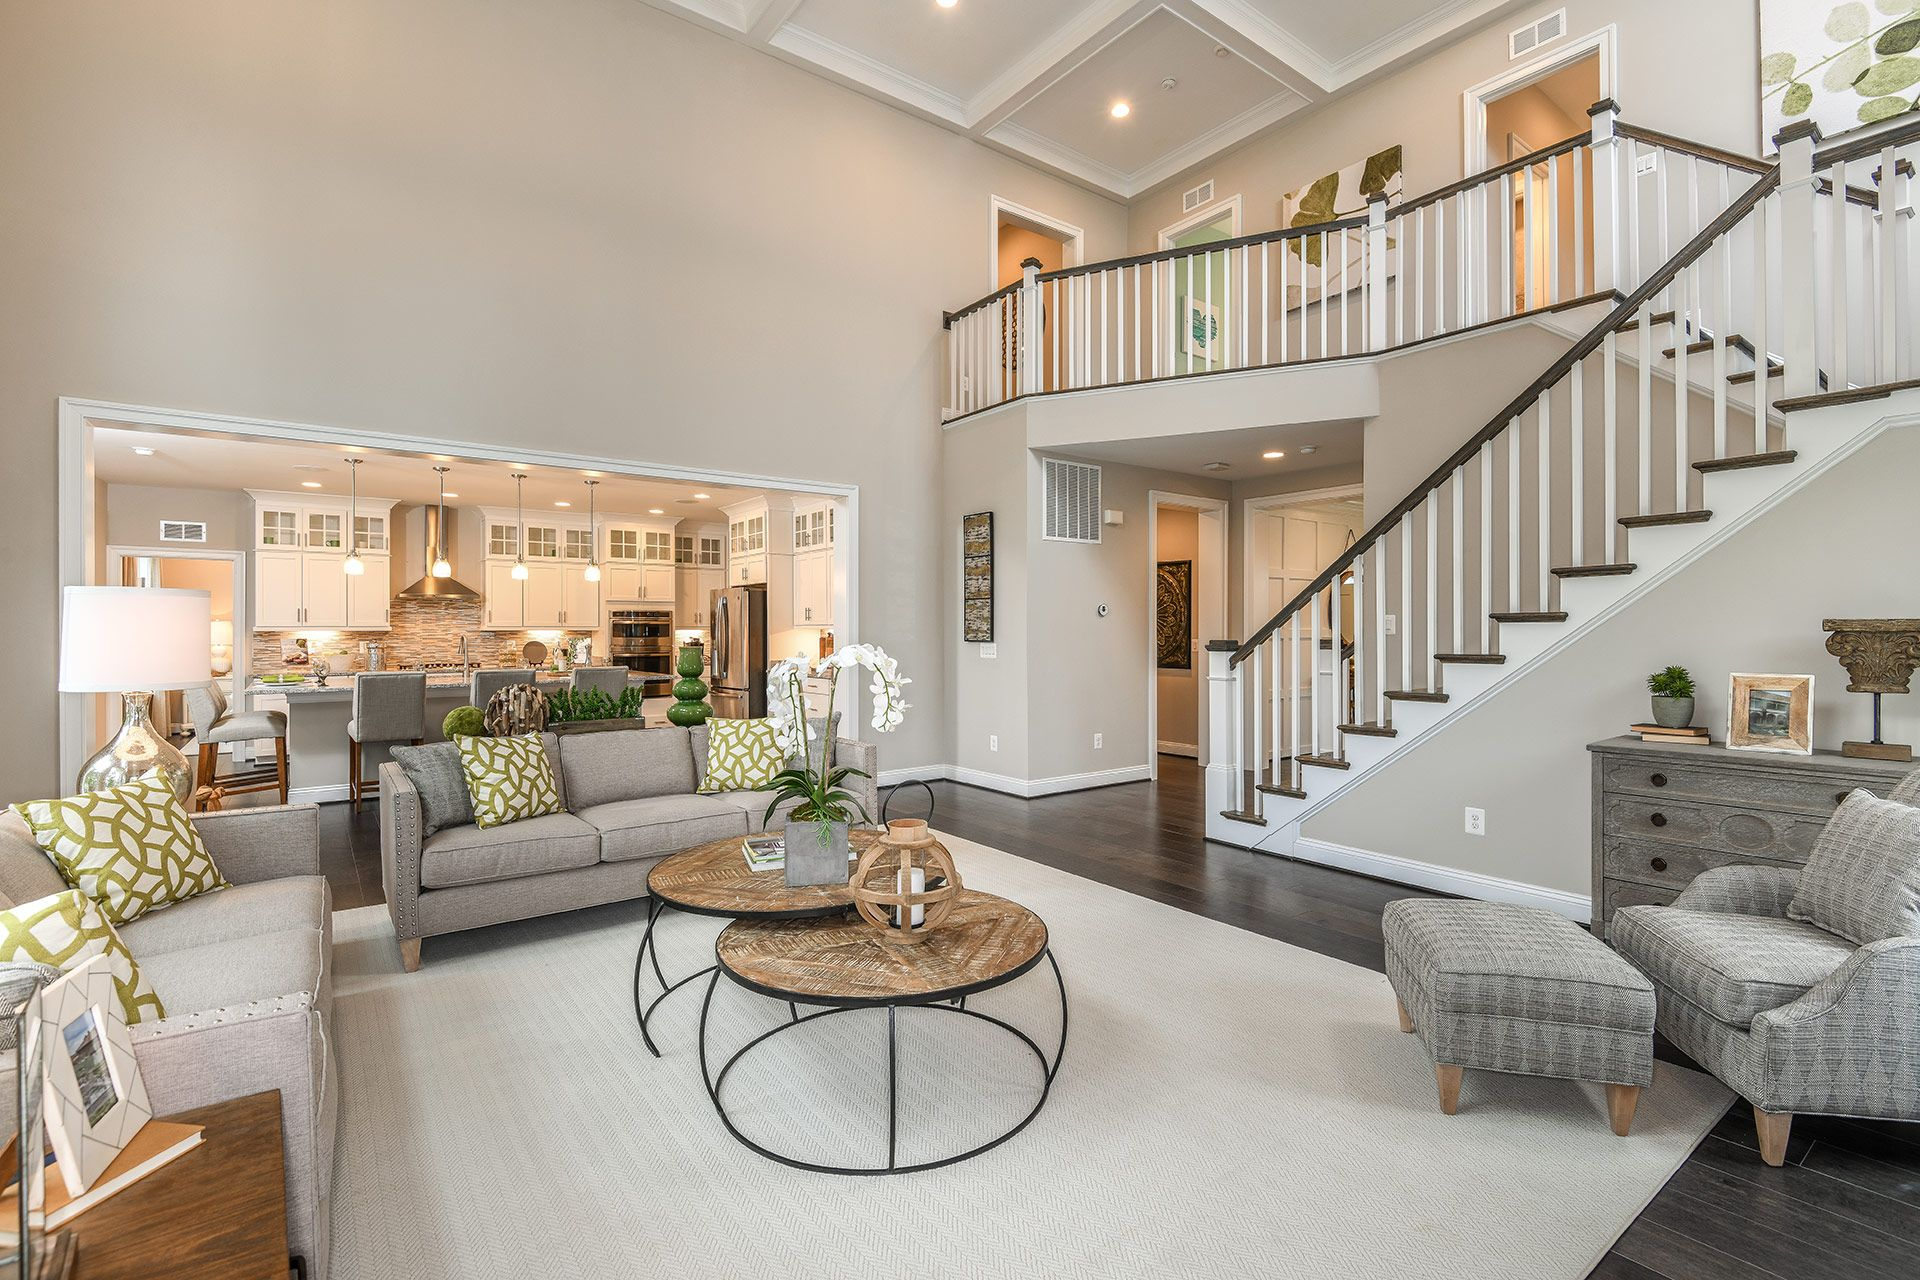 What Is Your Favorite Feature In This Open Living Space Living